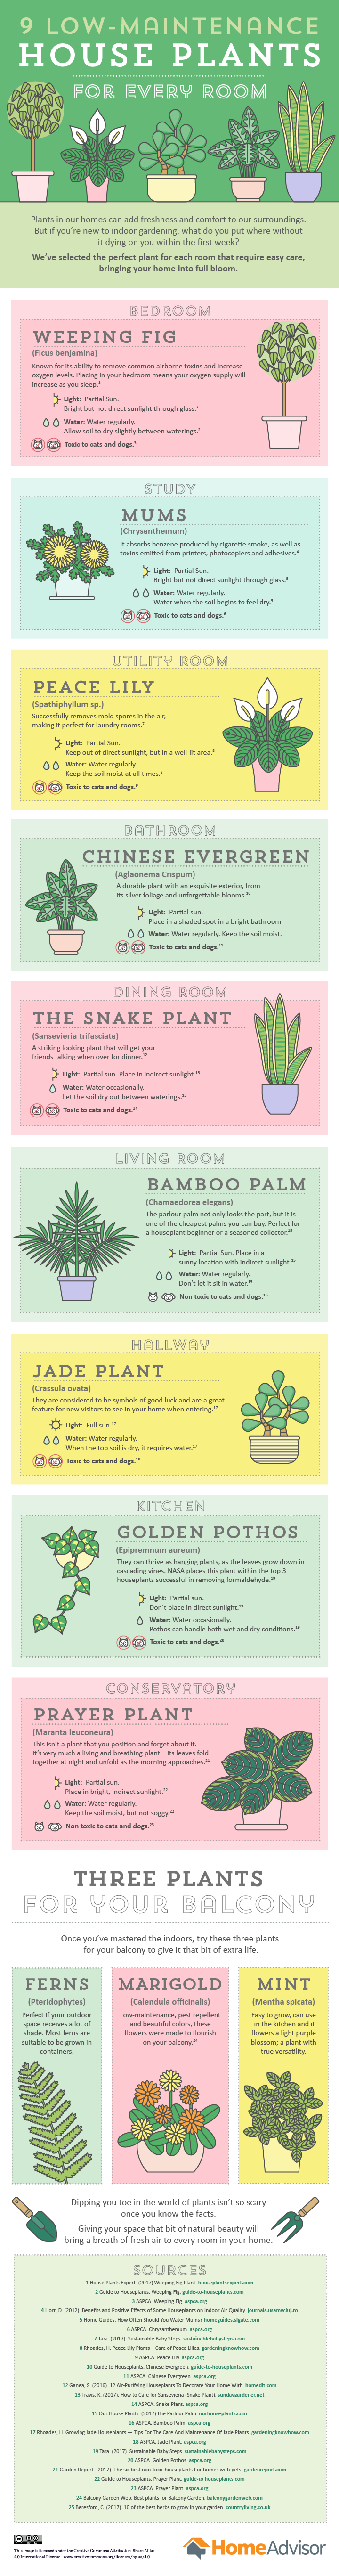 9 Low Maintenance House Plants For Every Room Homeadvisor House